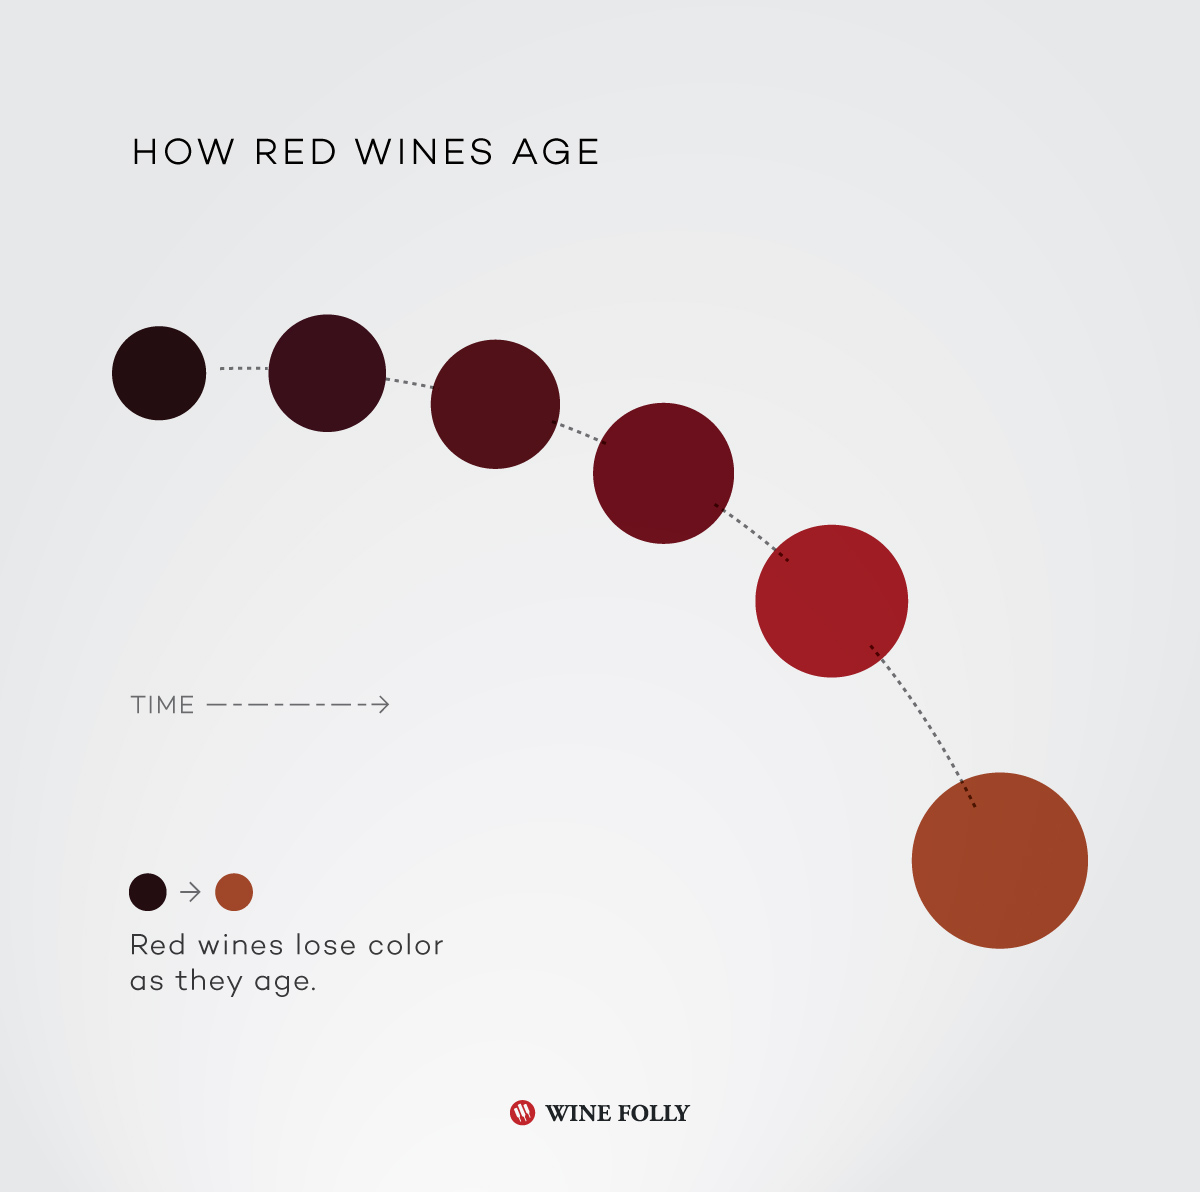 How red wines age infographic by Wine Folly